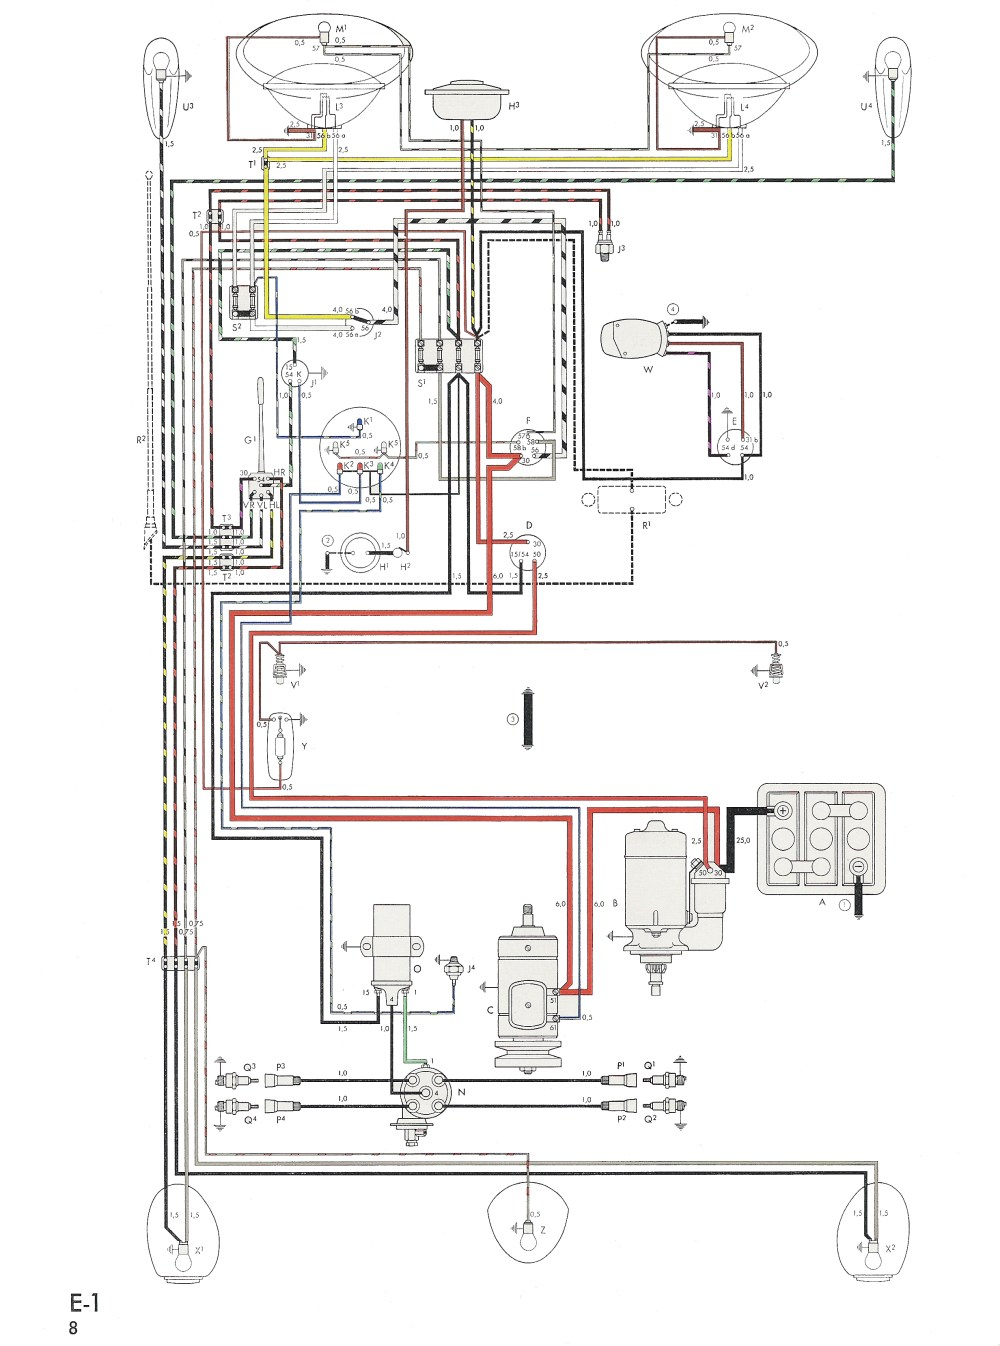 medium resolution of thesamba com type 1 wiring diagrams 70 vw bus wiring diagram 70 vw wiring diagram